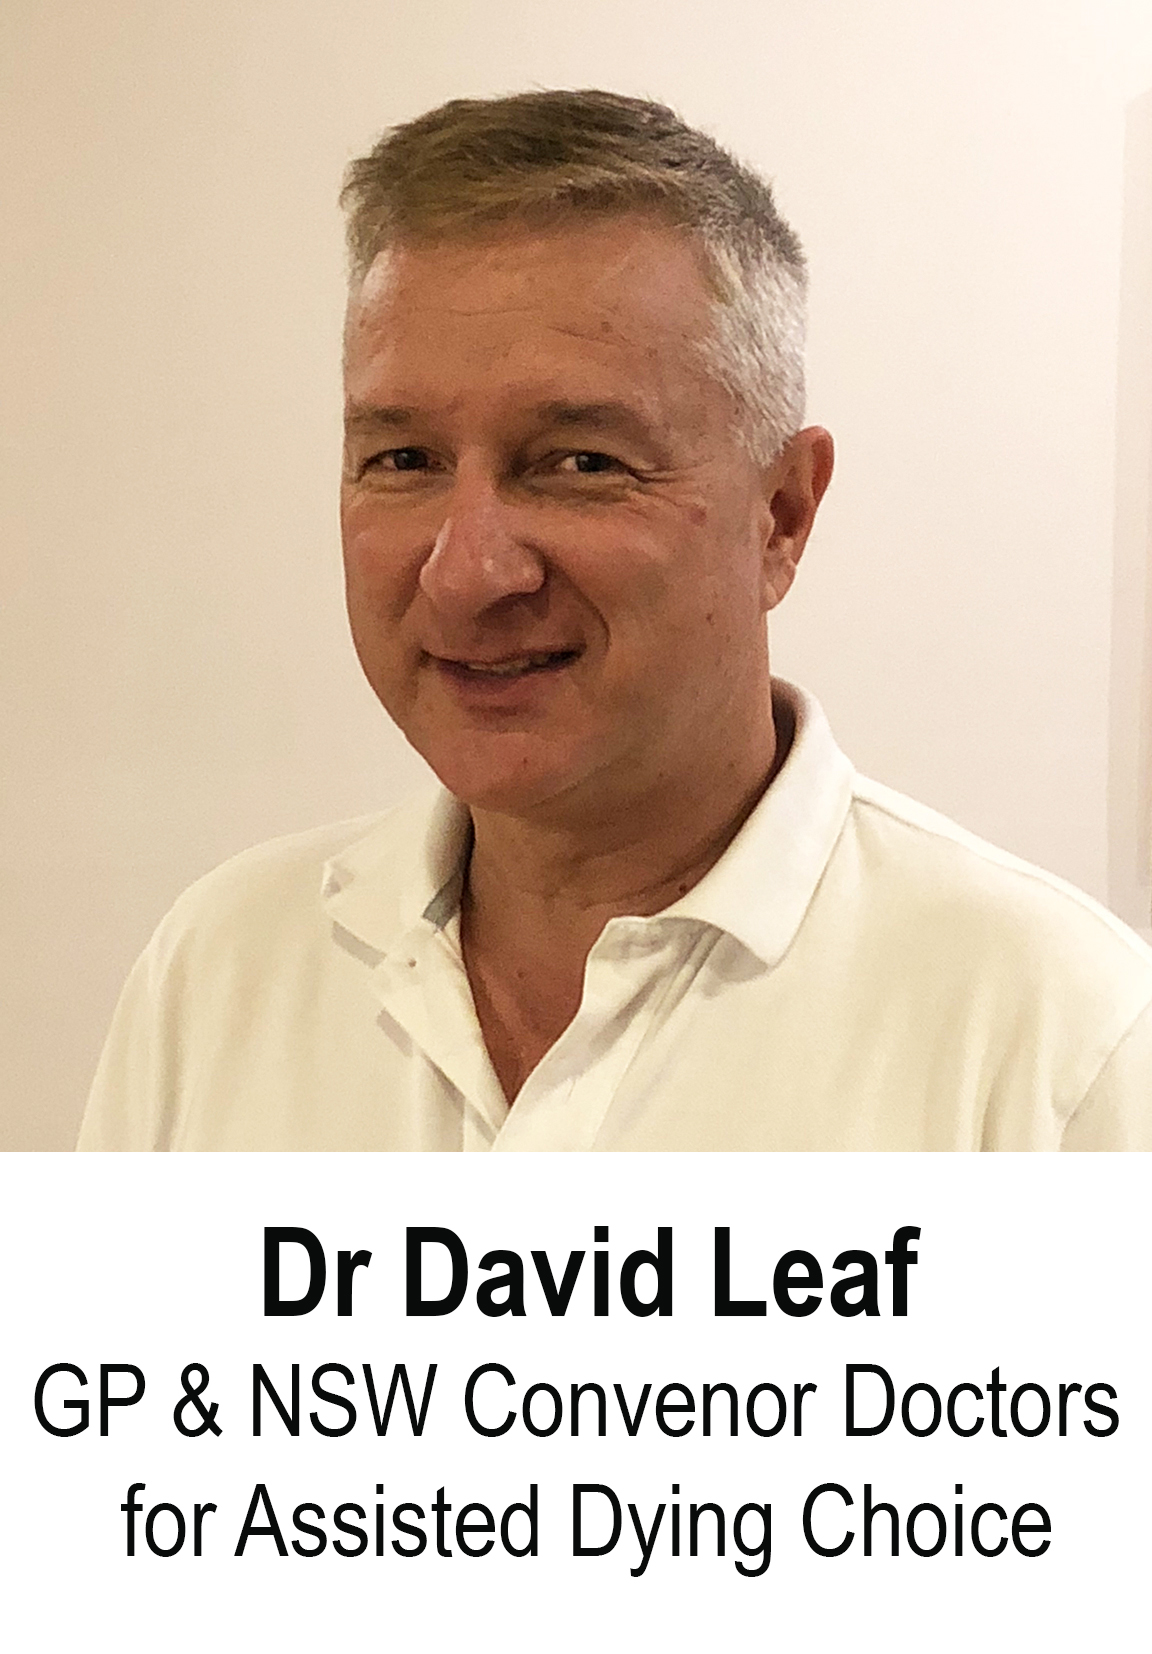 david_leaf_picture_and_text.jpg